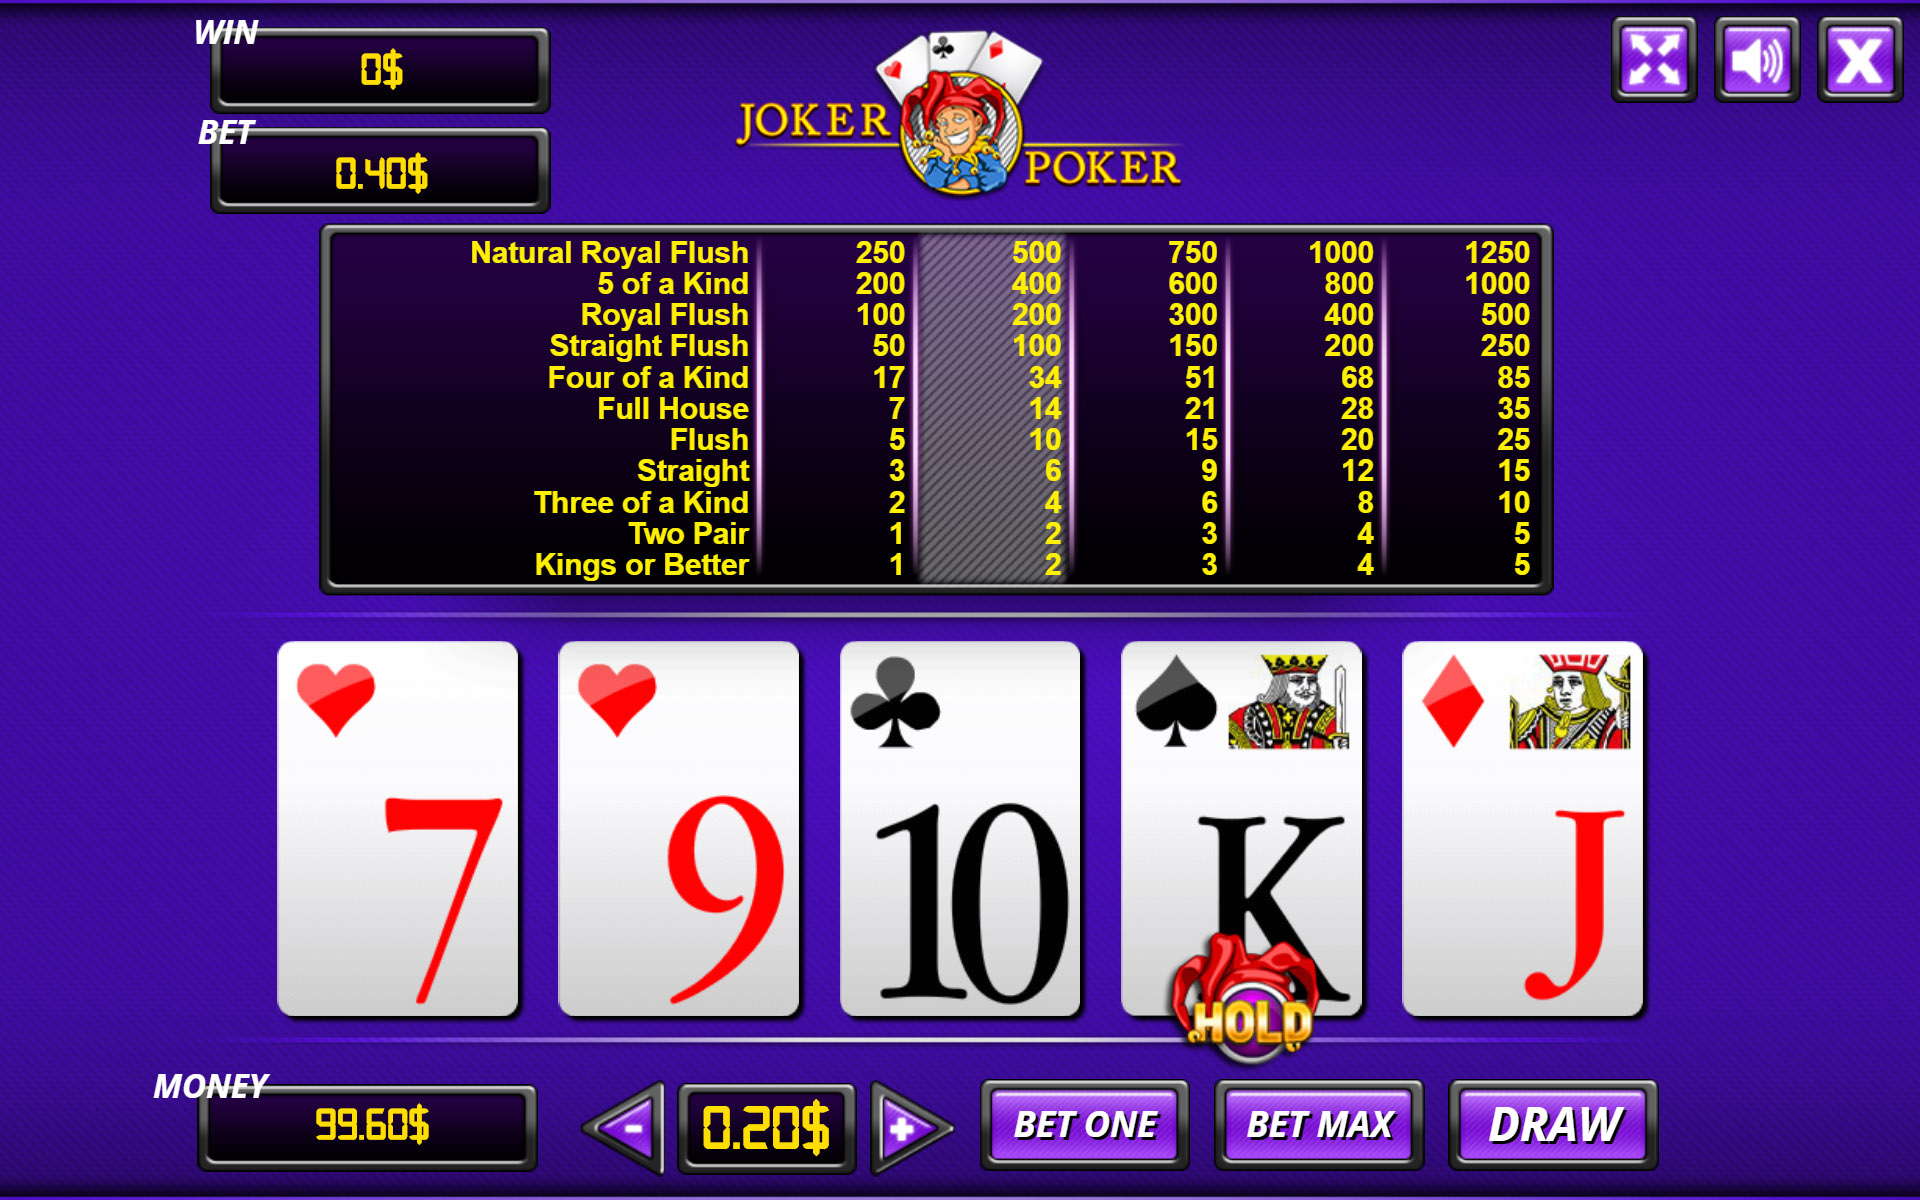 The joker casino menu